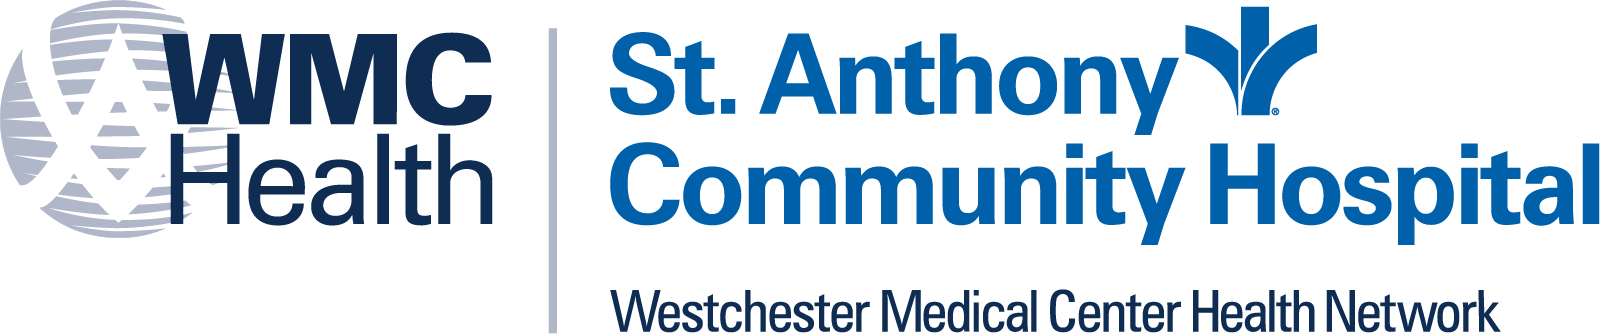 St. Anthony Community Hospital